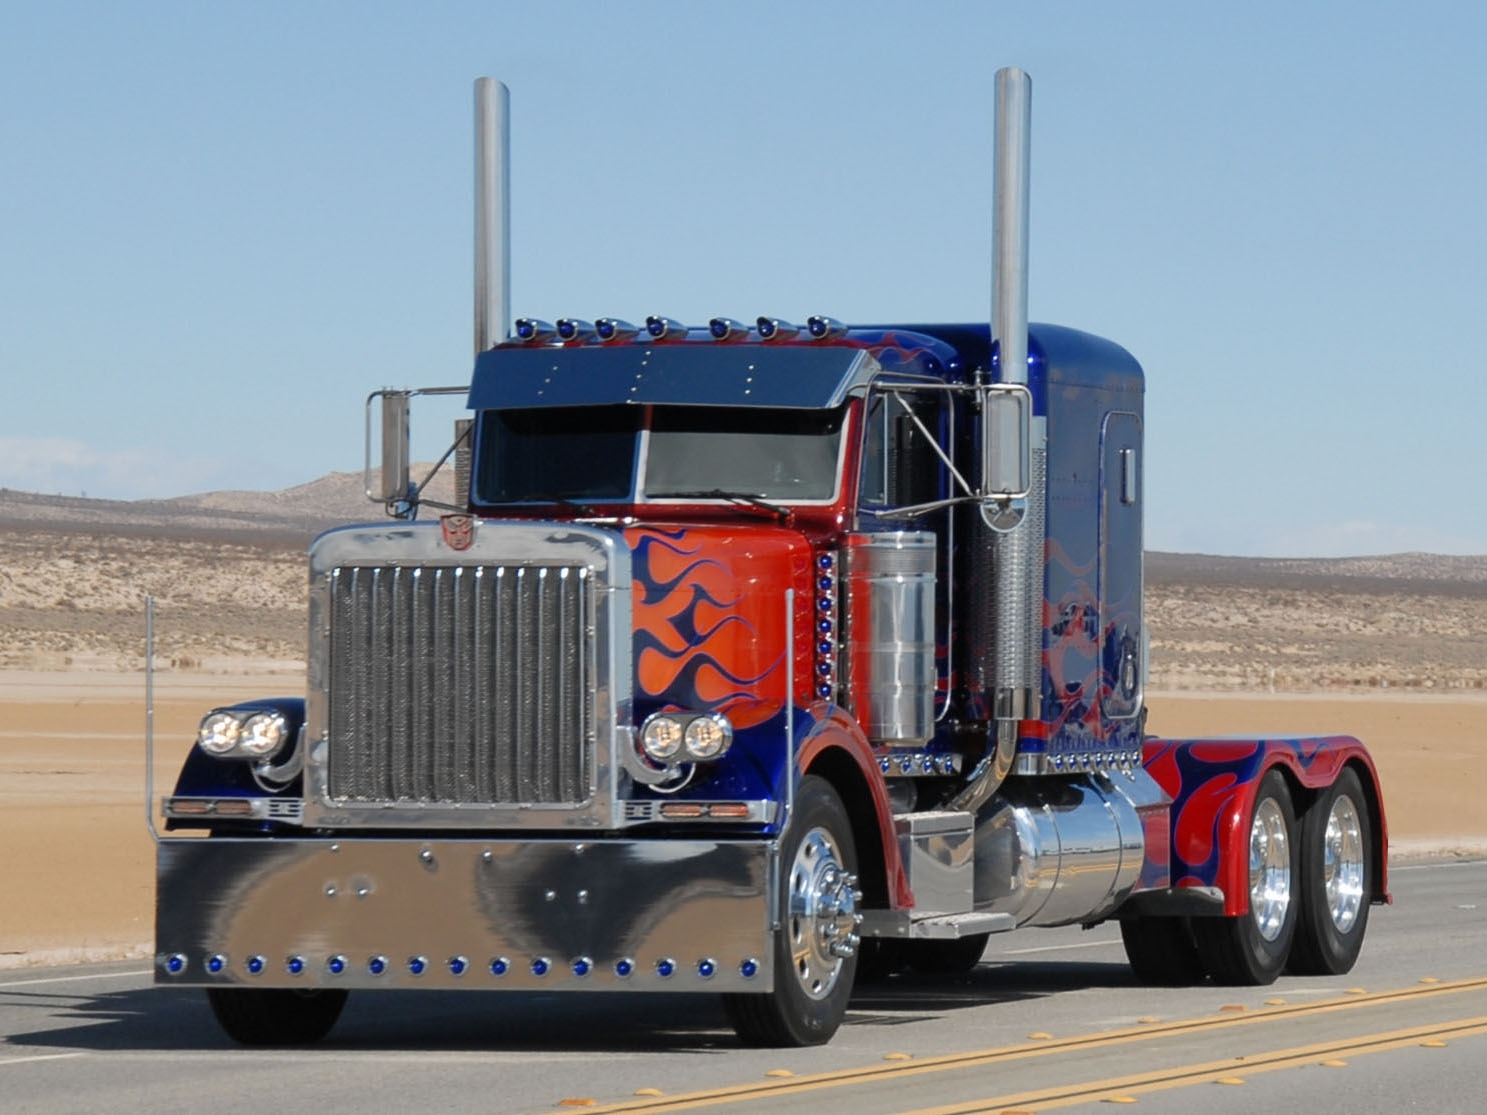 9 super cool semi trucks you won't see every day - nexttruck blog